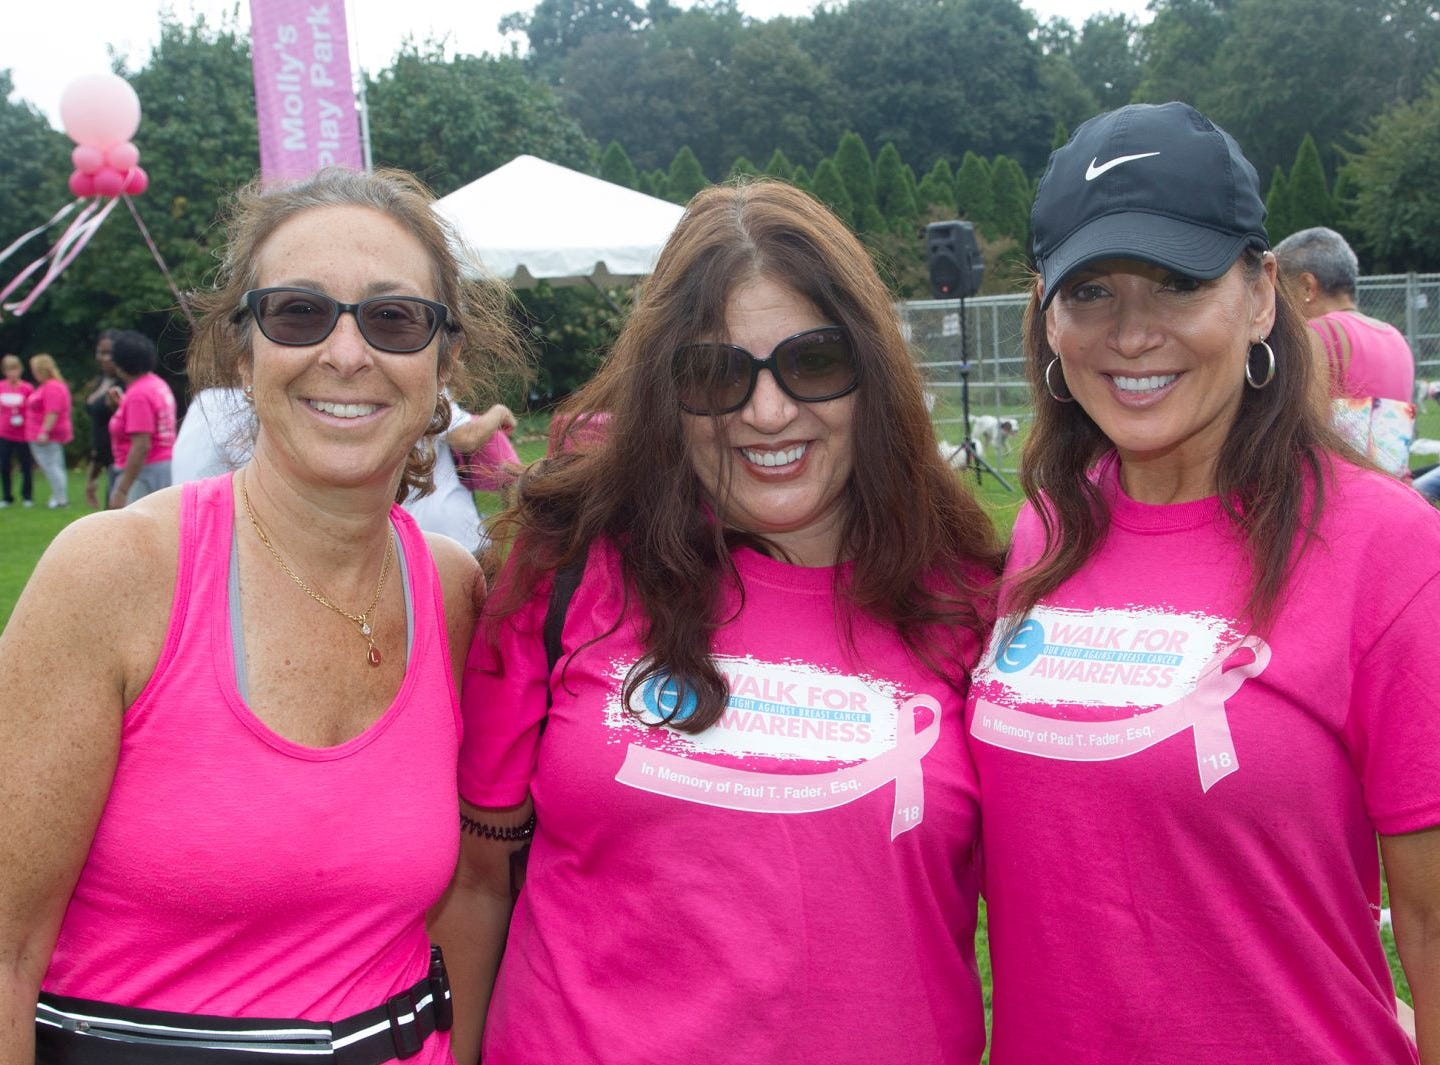 Kathy, Darlene, Sienna. Englewood Health Foundation hosted its 2018 Walk for Awareness and Susan Lucianna Memorial Dog Walk dedicated in memory of Walk for Awareness co-founder Paul Fader, Esq. 10/07/2018